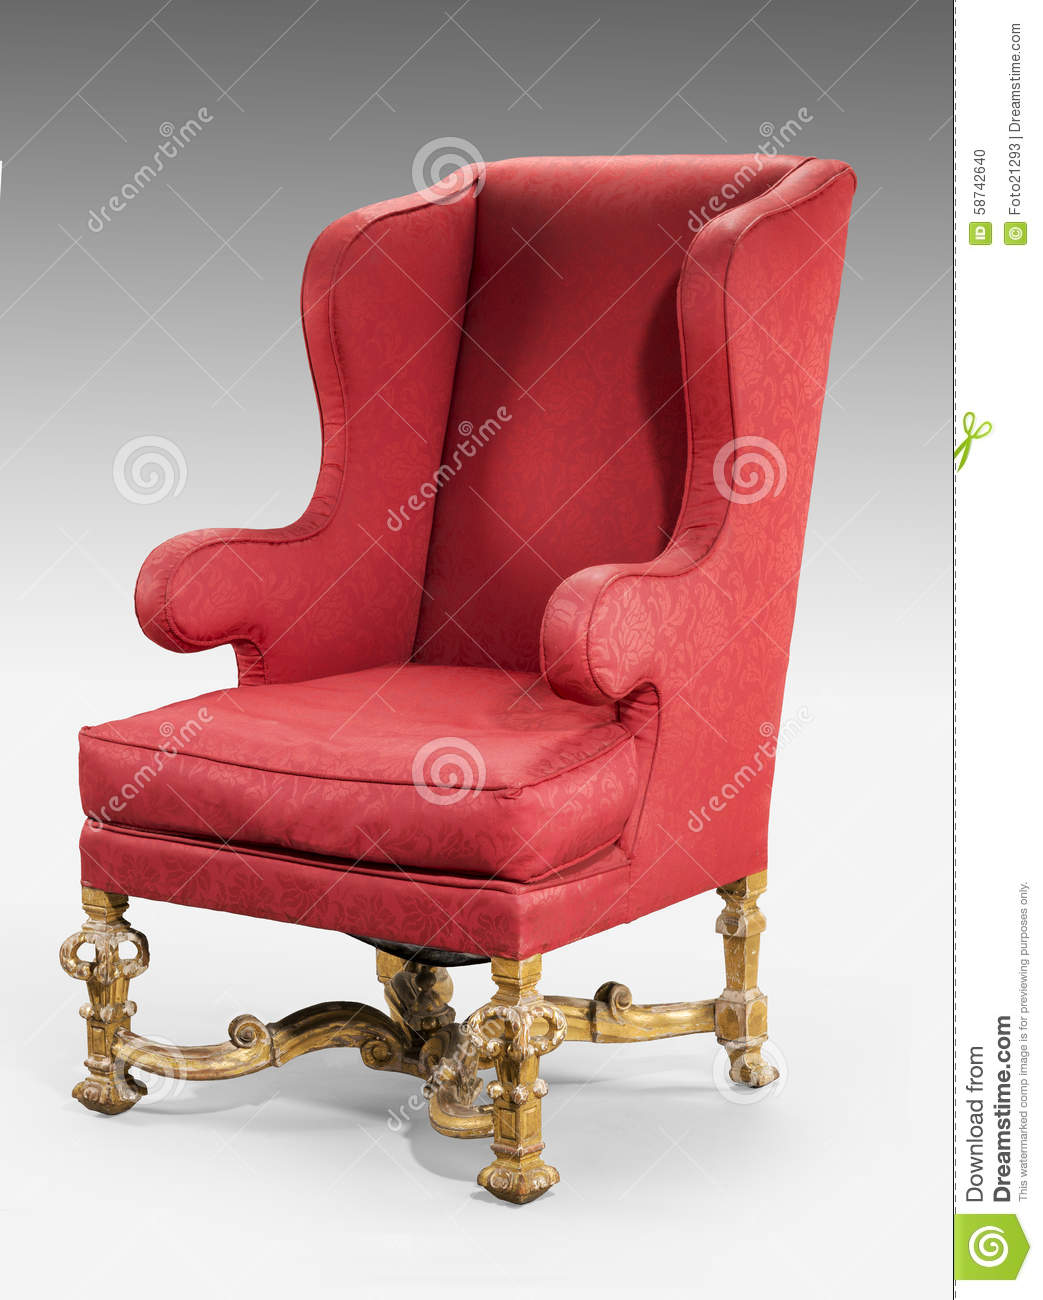 Antique birthing chair - Large Red Wing Chair Upholstered In Red Old Antique In Need Of R Stock Photo